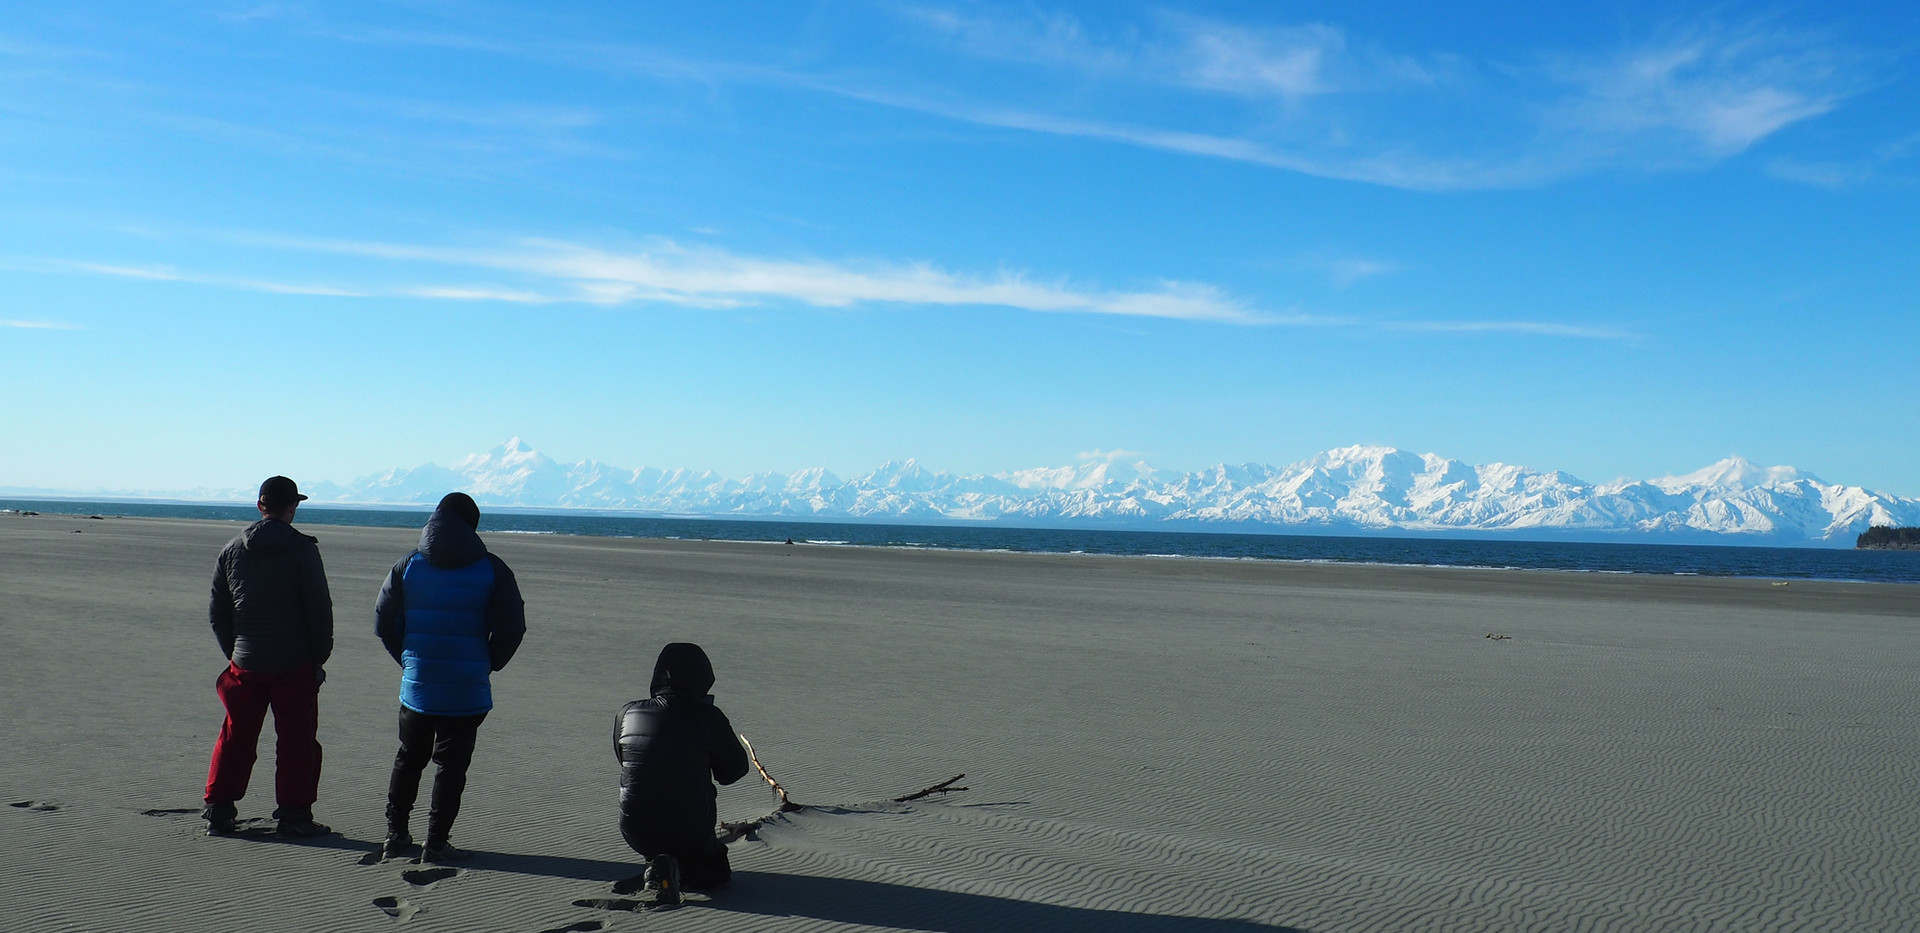 From the beach to the St Elias